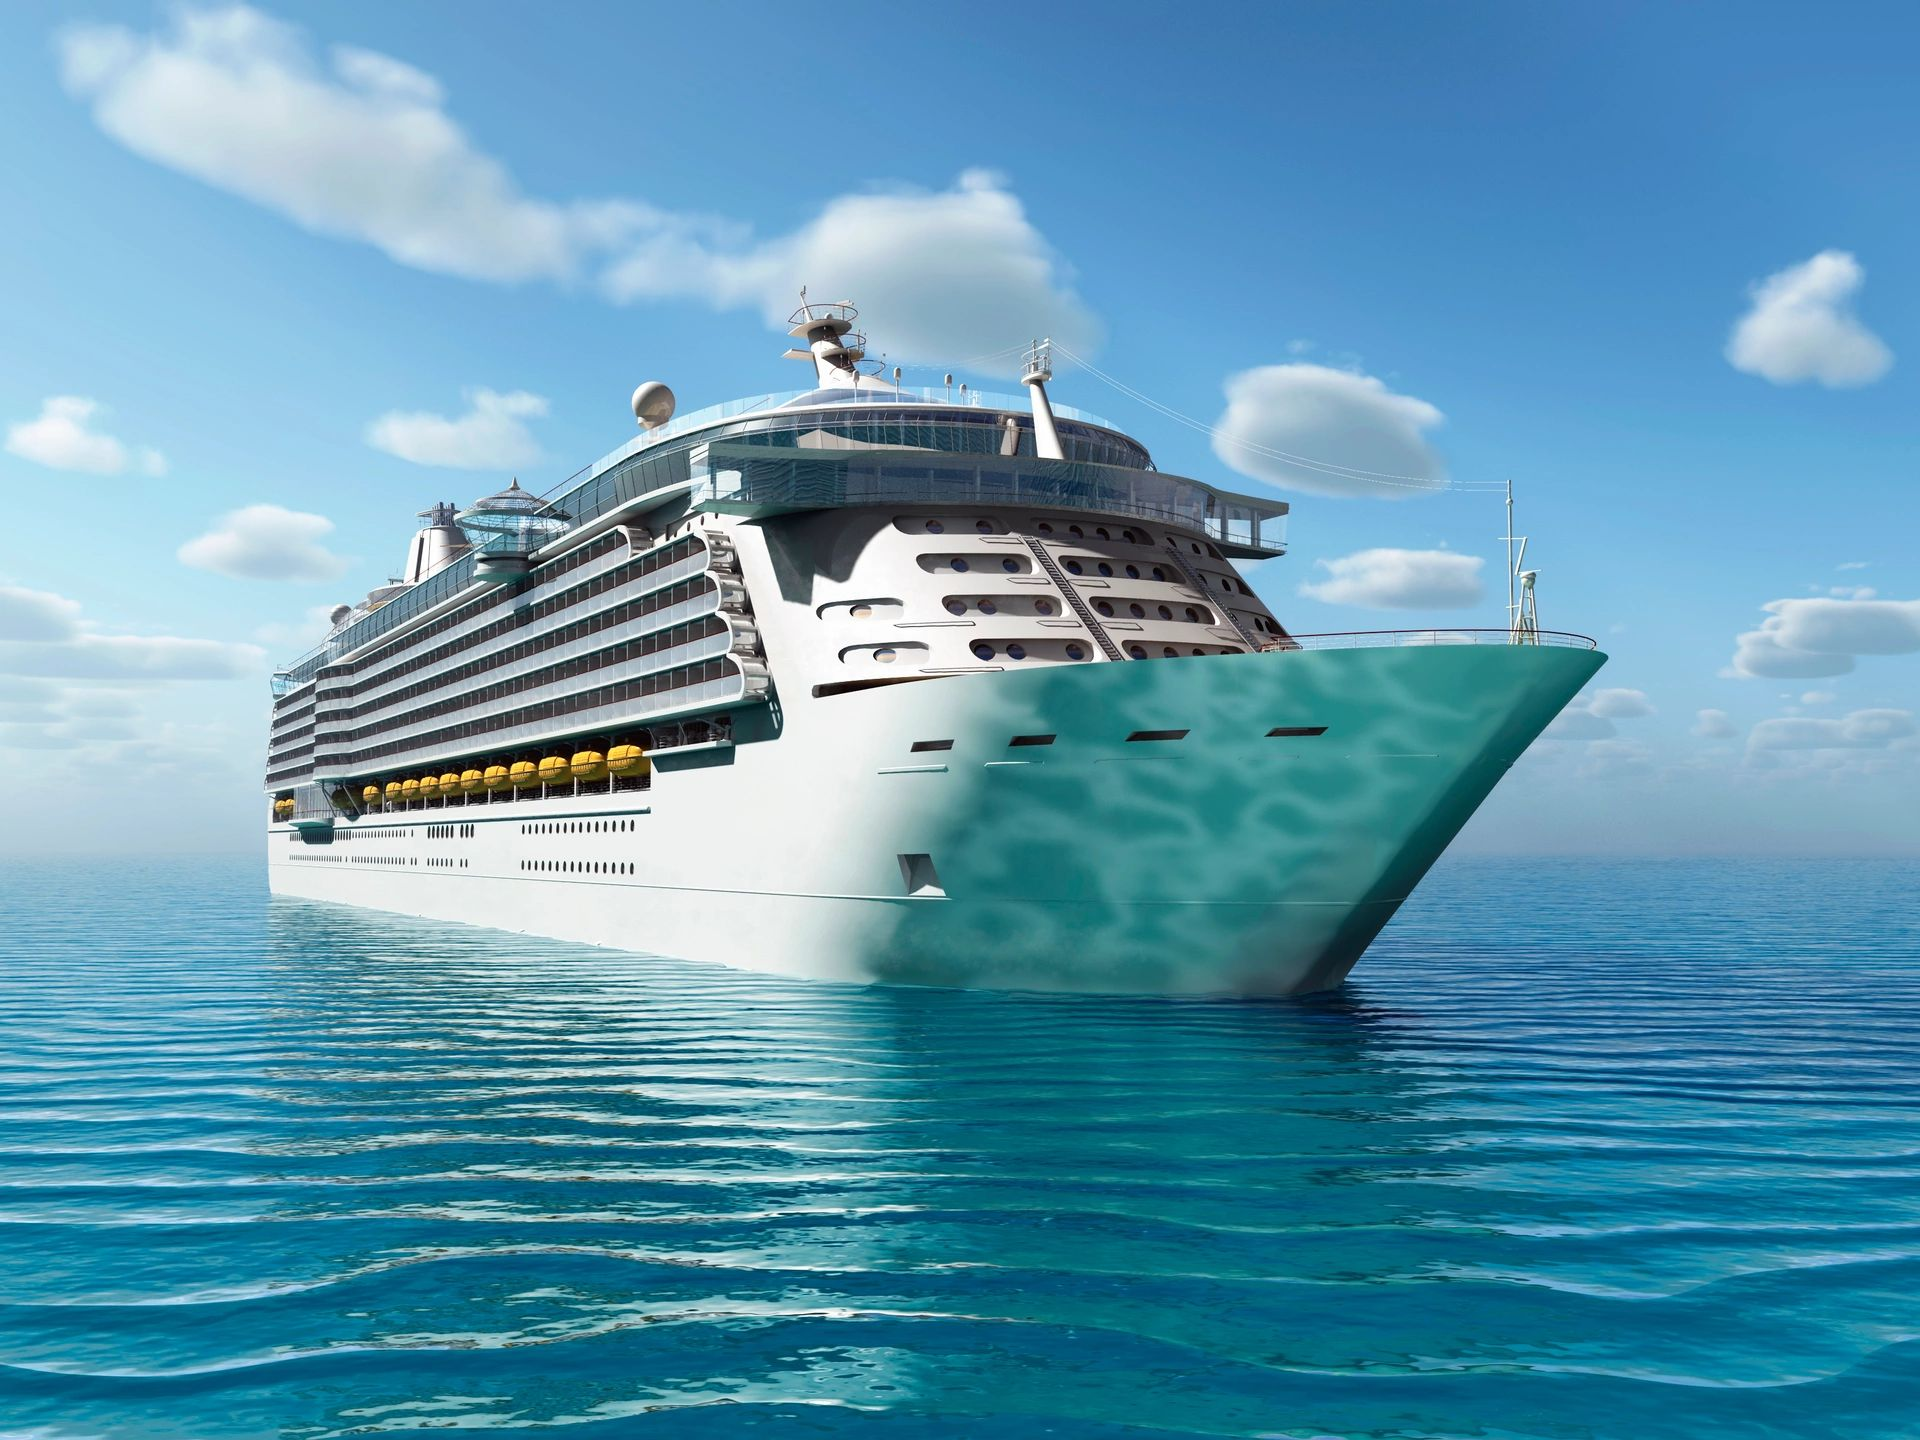 CRUISE SHIP QUESTIONS ANSWERED!